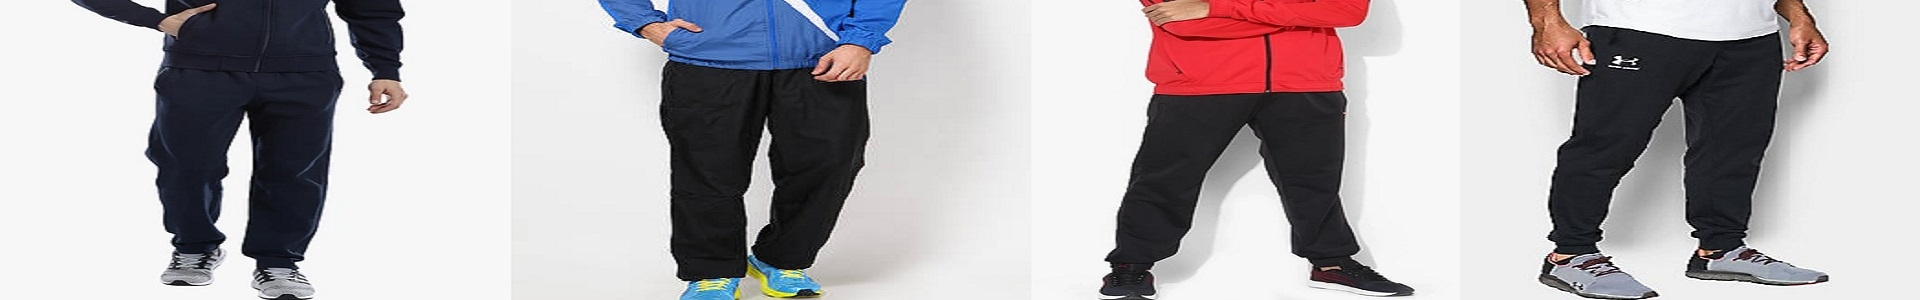 ExtraOffre Sport Banner Mens Clothing Tracksuit Bottoms Category